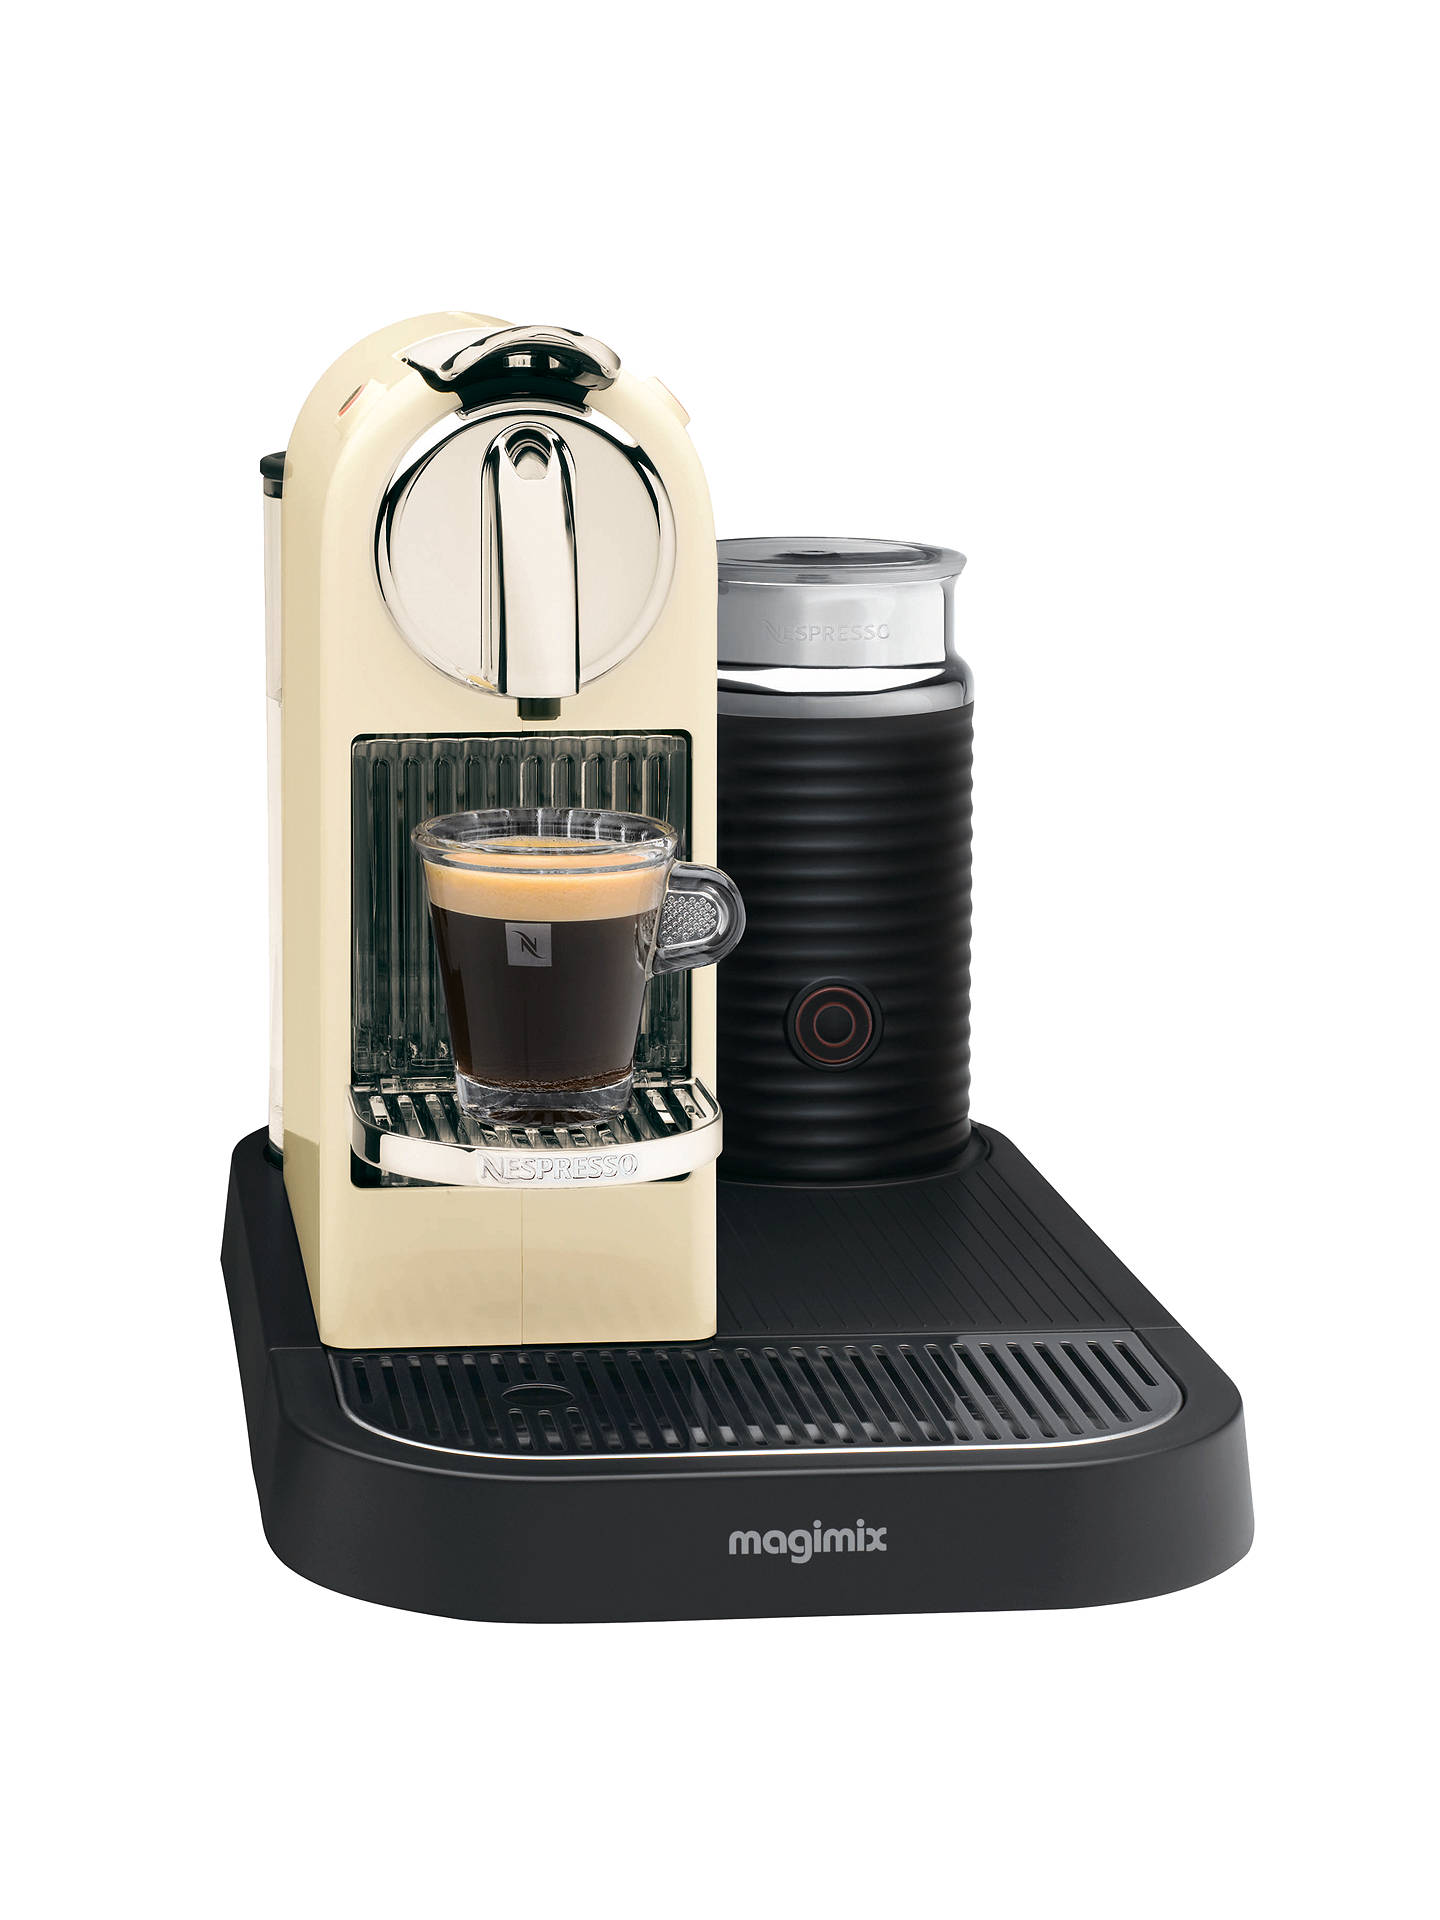 nespresso 190 citiz and milk coffee machine by magimix cream at john lewis partners. Black Bedroom Furniture Sets. Home Design Ideas